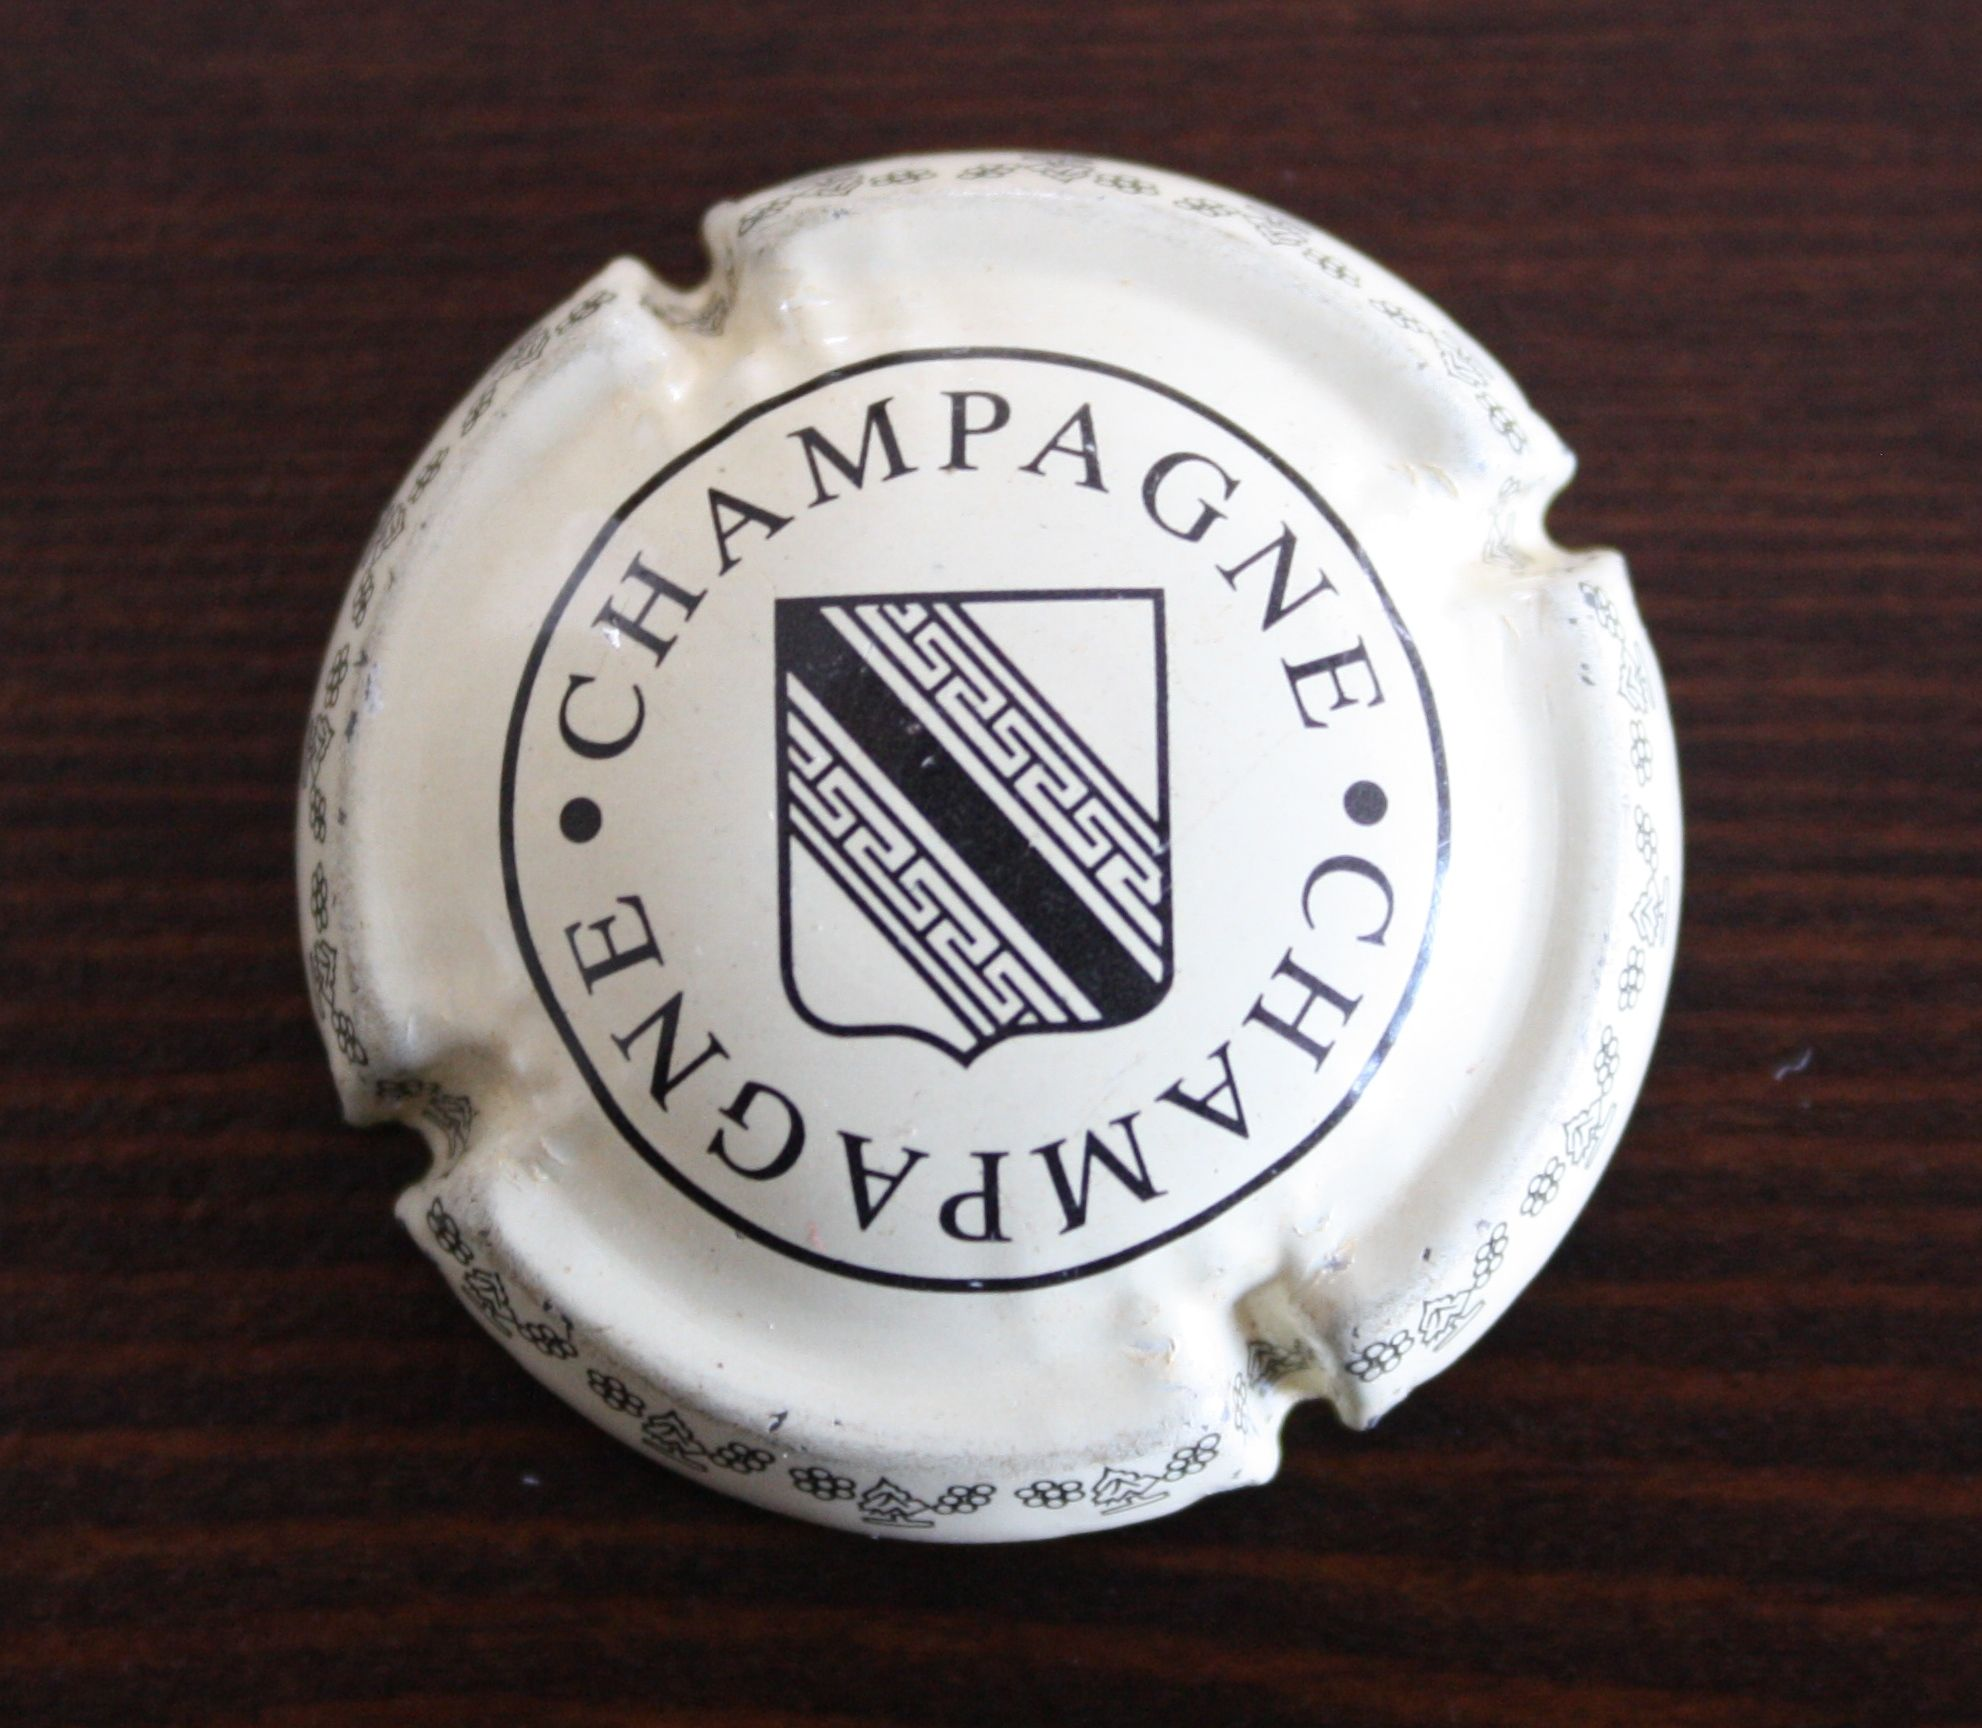 Champagne Capsule Generic Capsule Champagne Reims